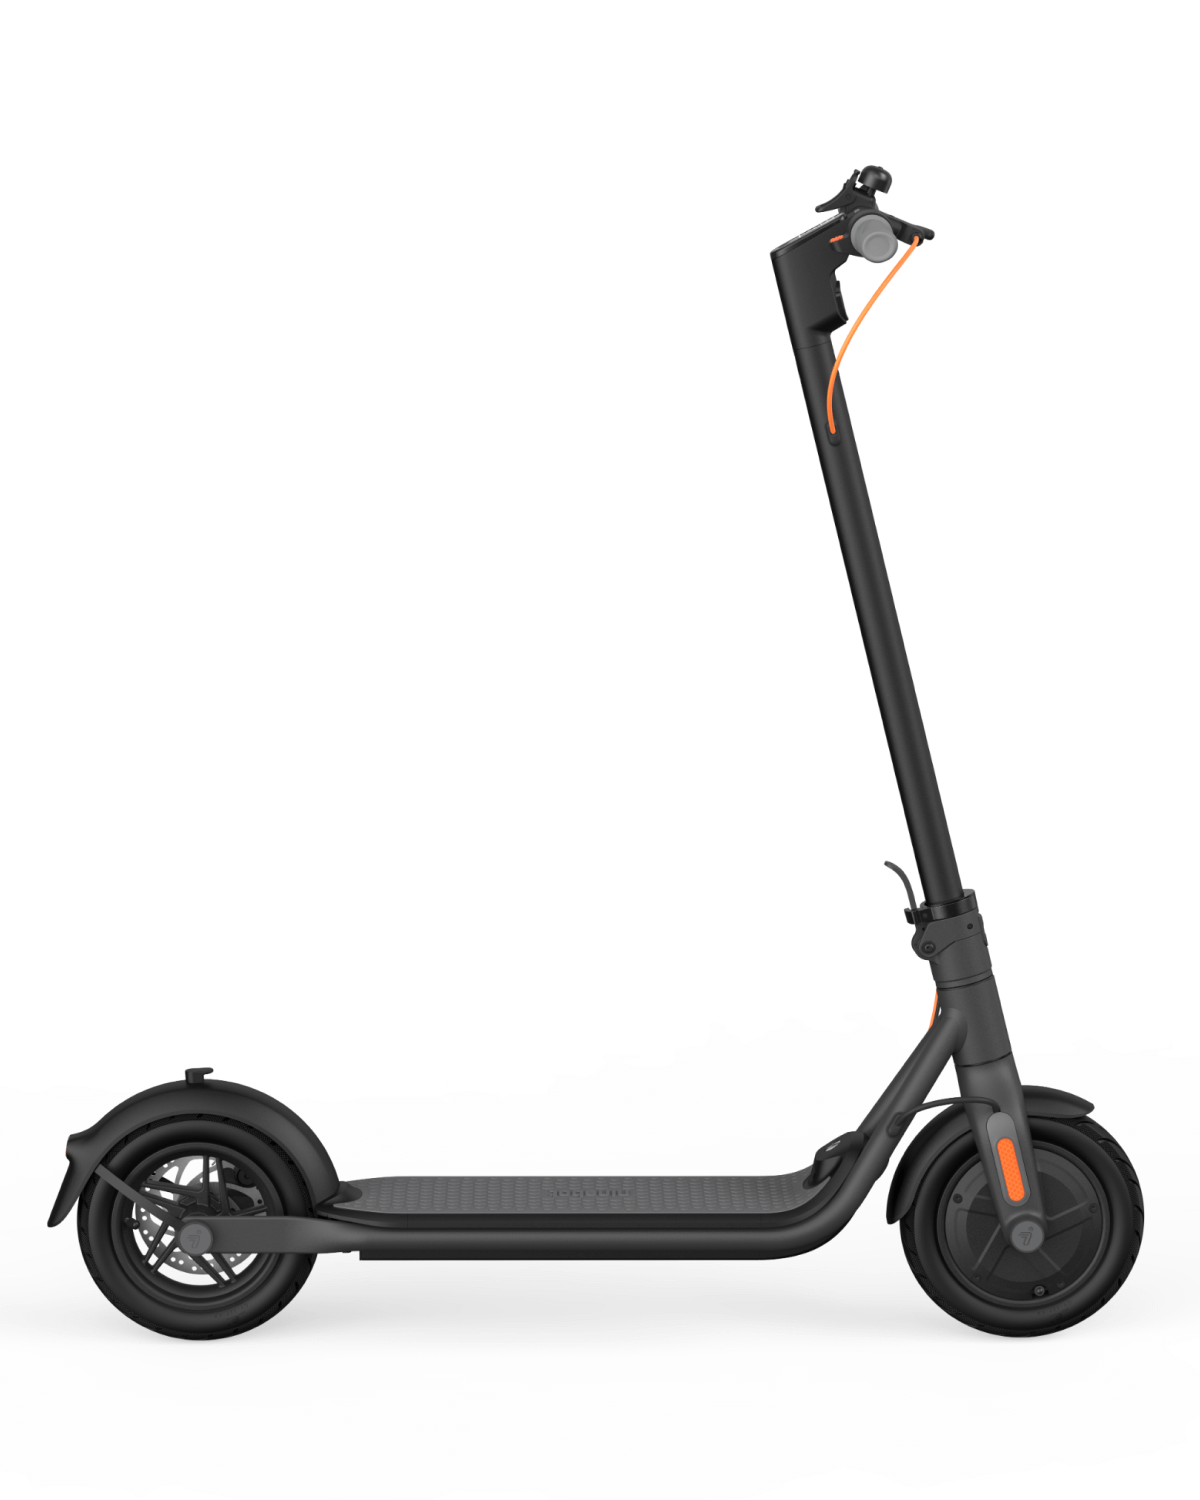 Ninebot F30 scooter riding experience